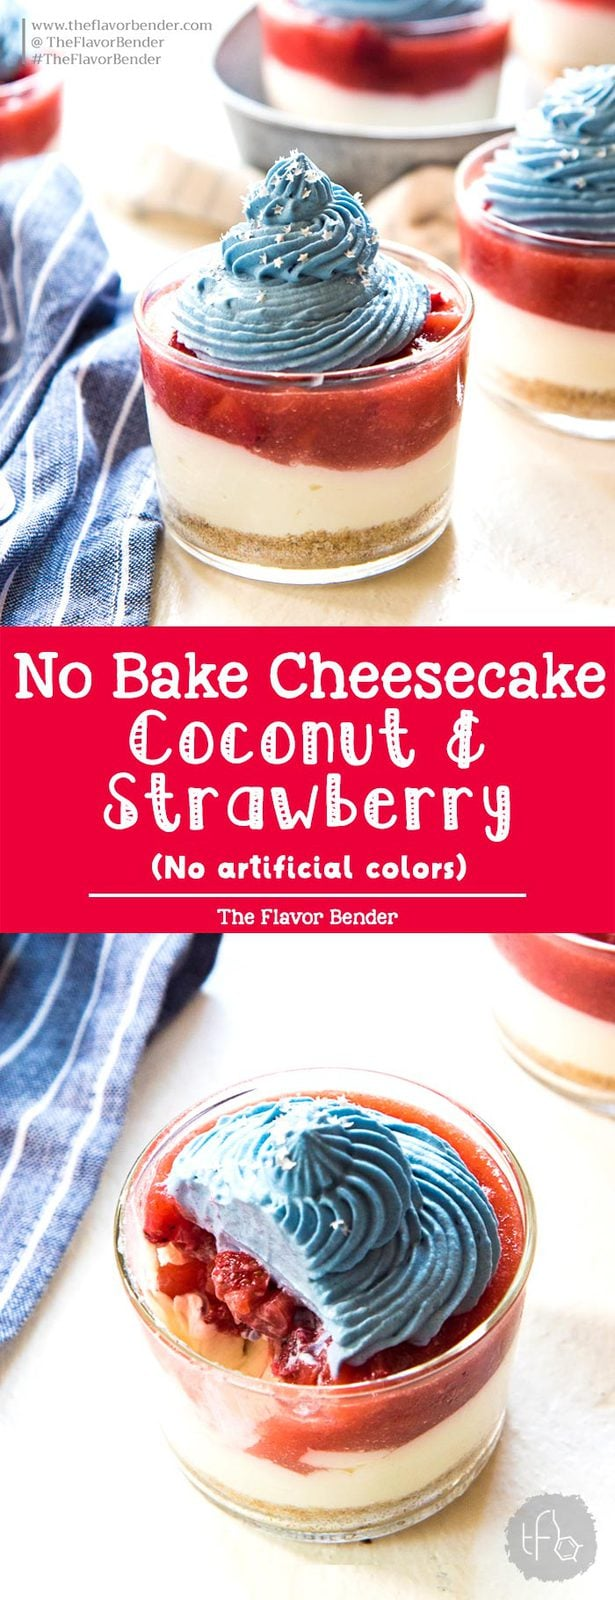 No Bake Coconut Strawberry Cheesecake Jars - There's no artificial coloring or flavoring in these mini desserts. The perfect pairing of coconut cheesecake and fresh strawberry pie filling makes these the perfect Fourth of July dessert! #NoBakeDesserts #NoBakeCheesecake #FourthOfJuly #Desserts